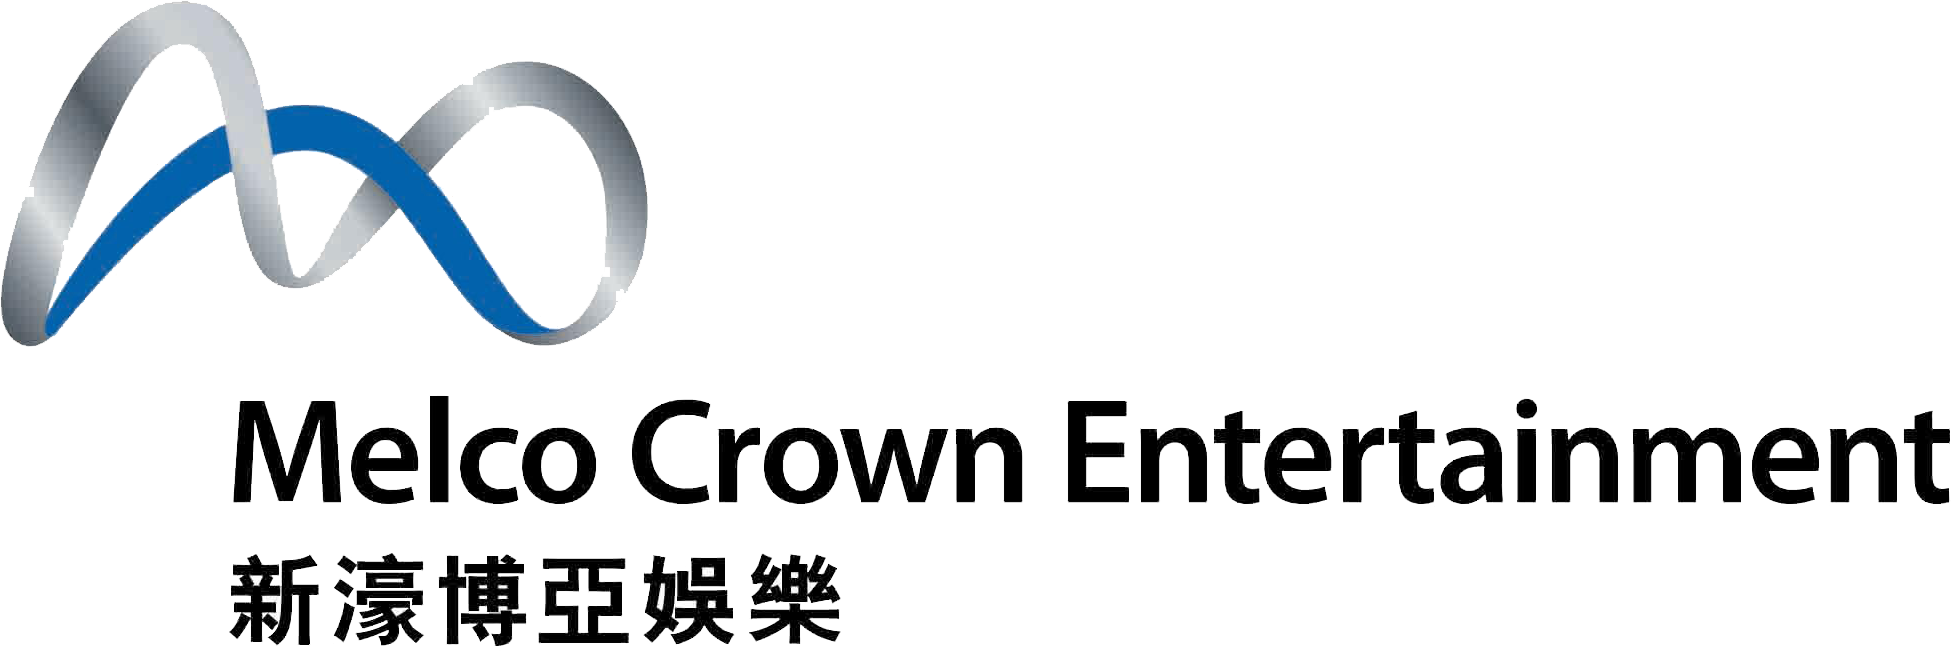 dampf-bluetooth-hotel-audio-hotel-melco-crown-entertrainment